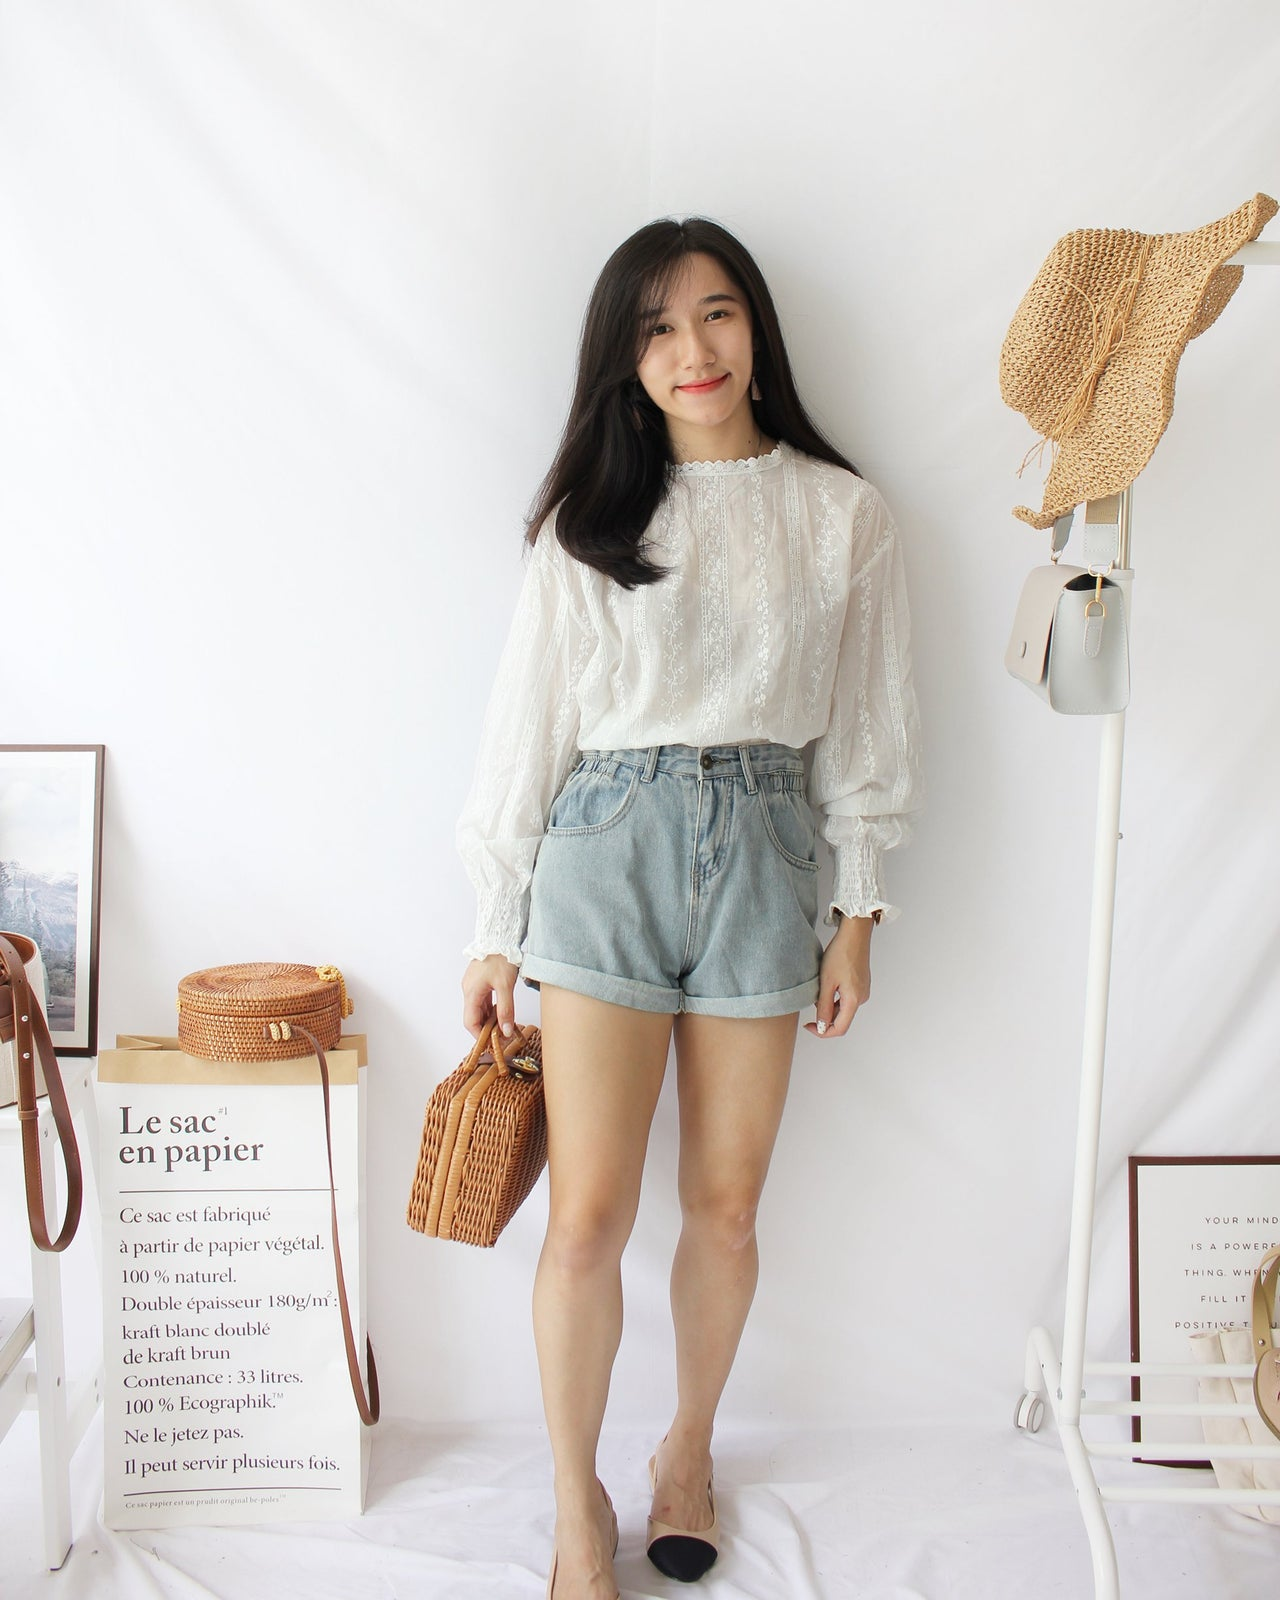 Lily Crochet Sweet Top - LovelyMadness Clothing Online Fashion Malaysia